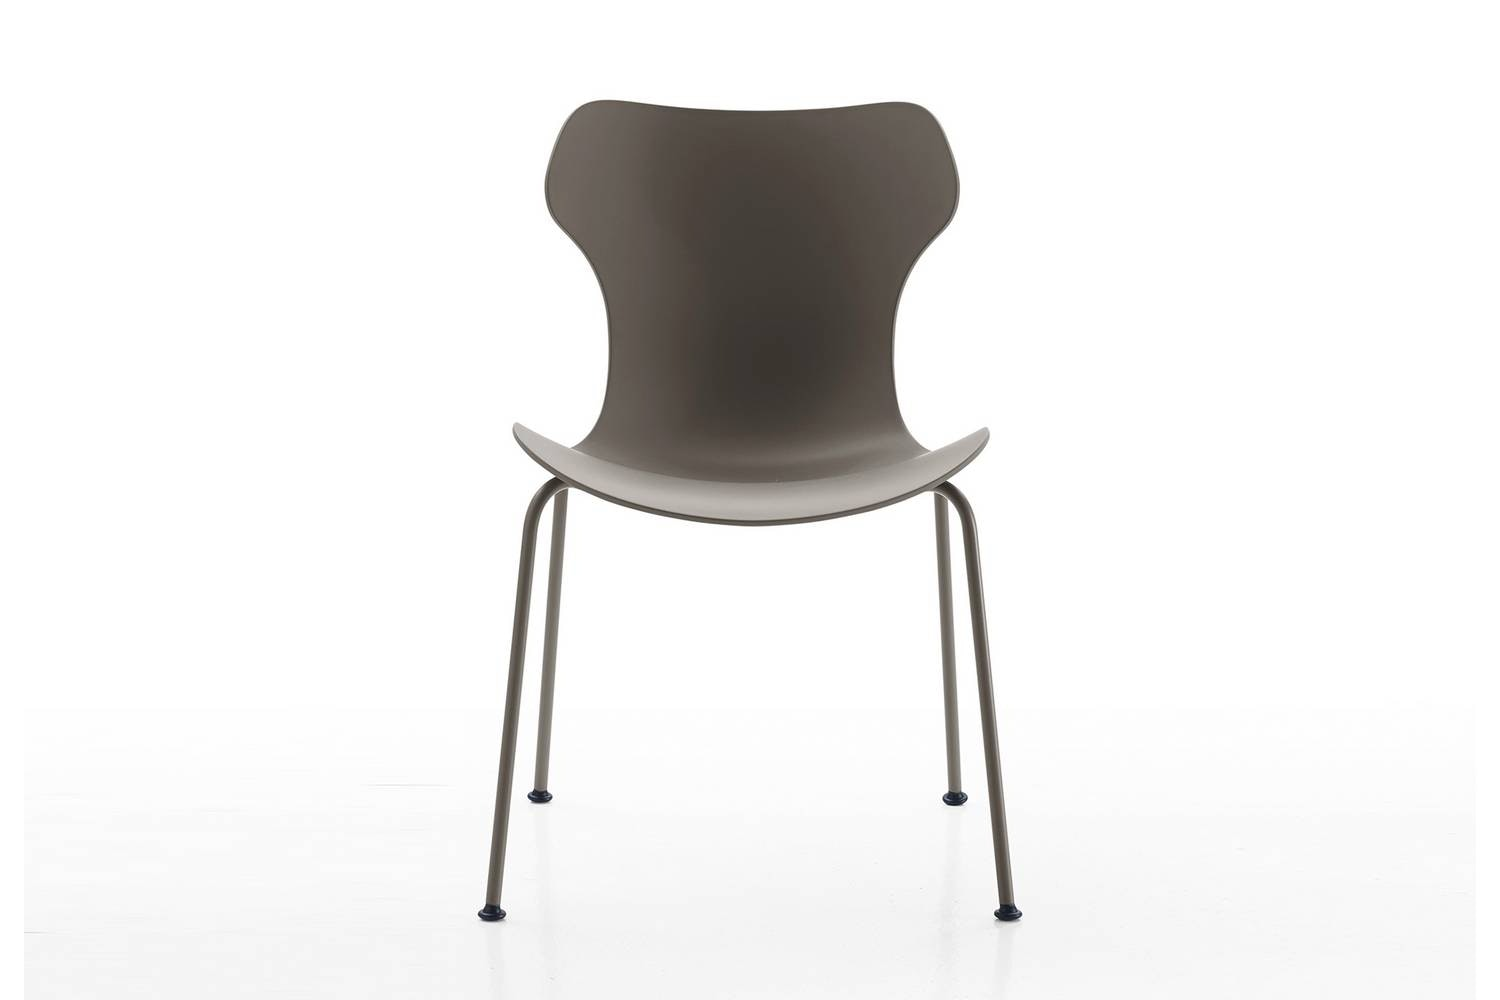 Papilio Shell Chair by Naoto Fukasawa for B&B Italia